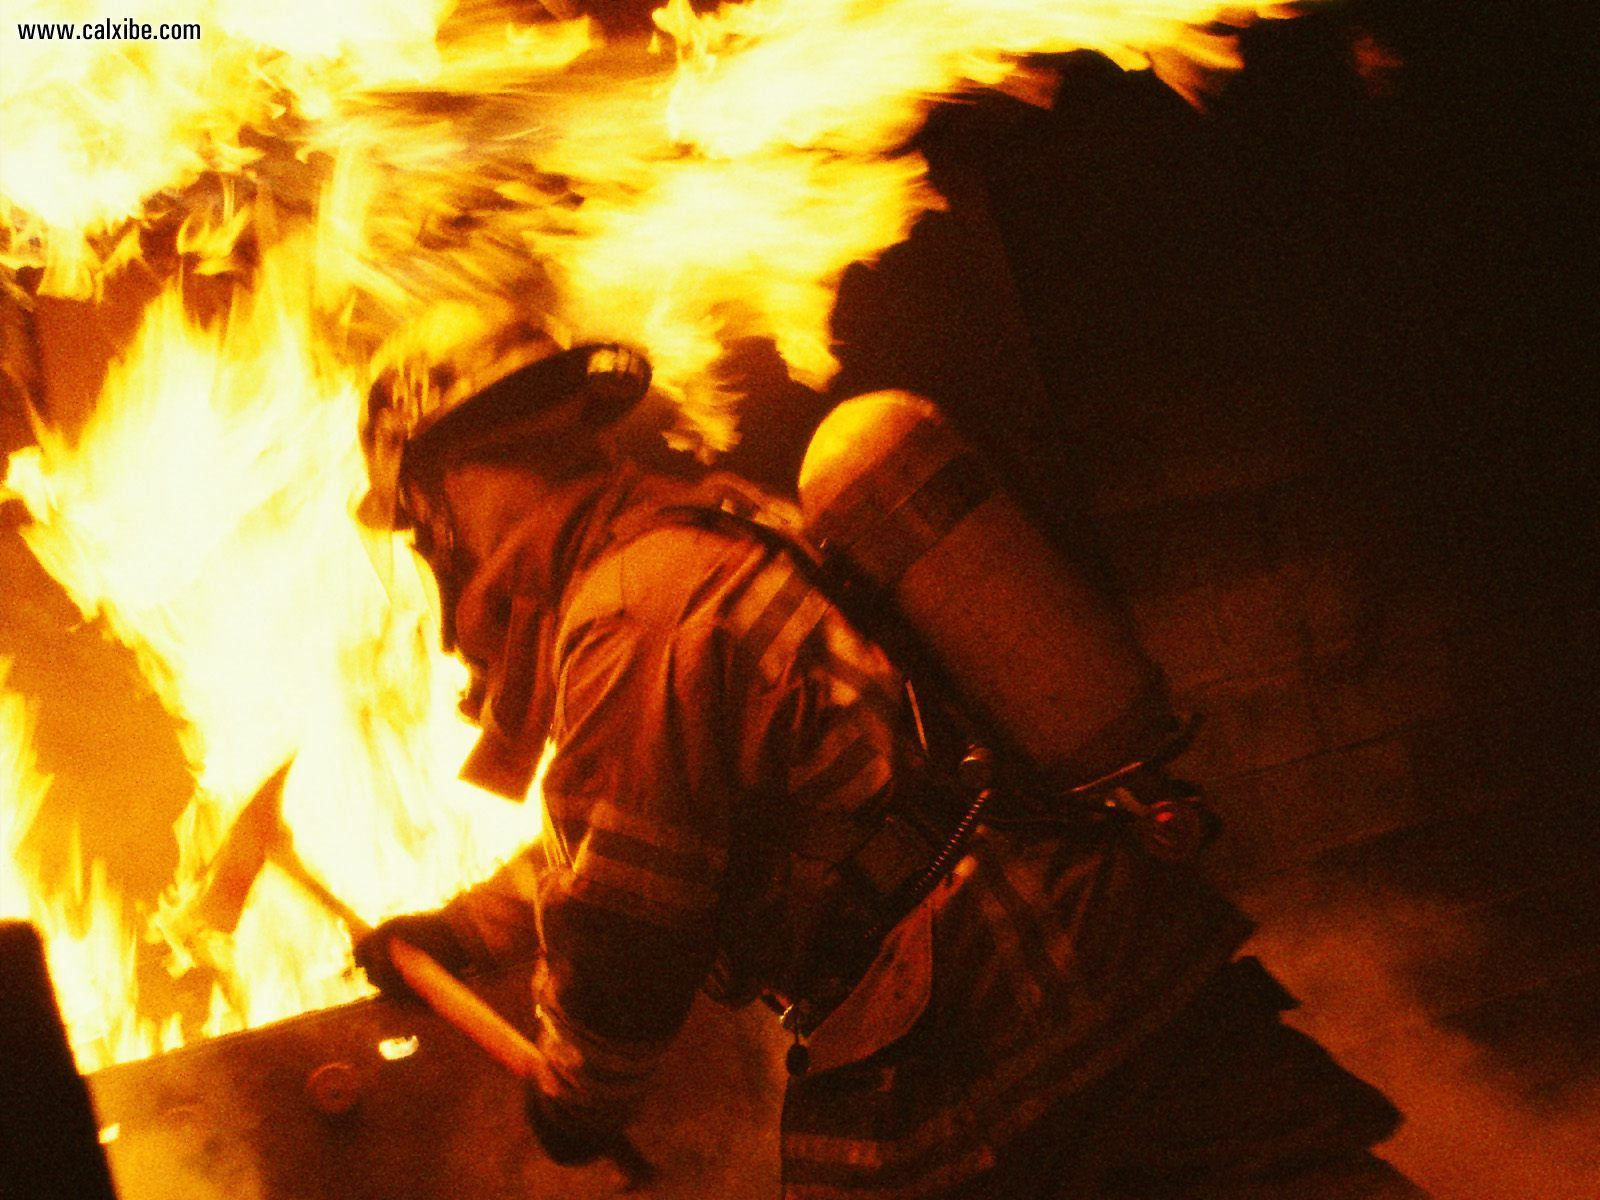 Firefighter Desktop Wallpapers submited images 1600x1200